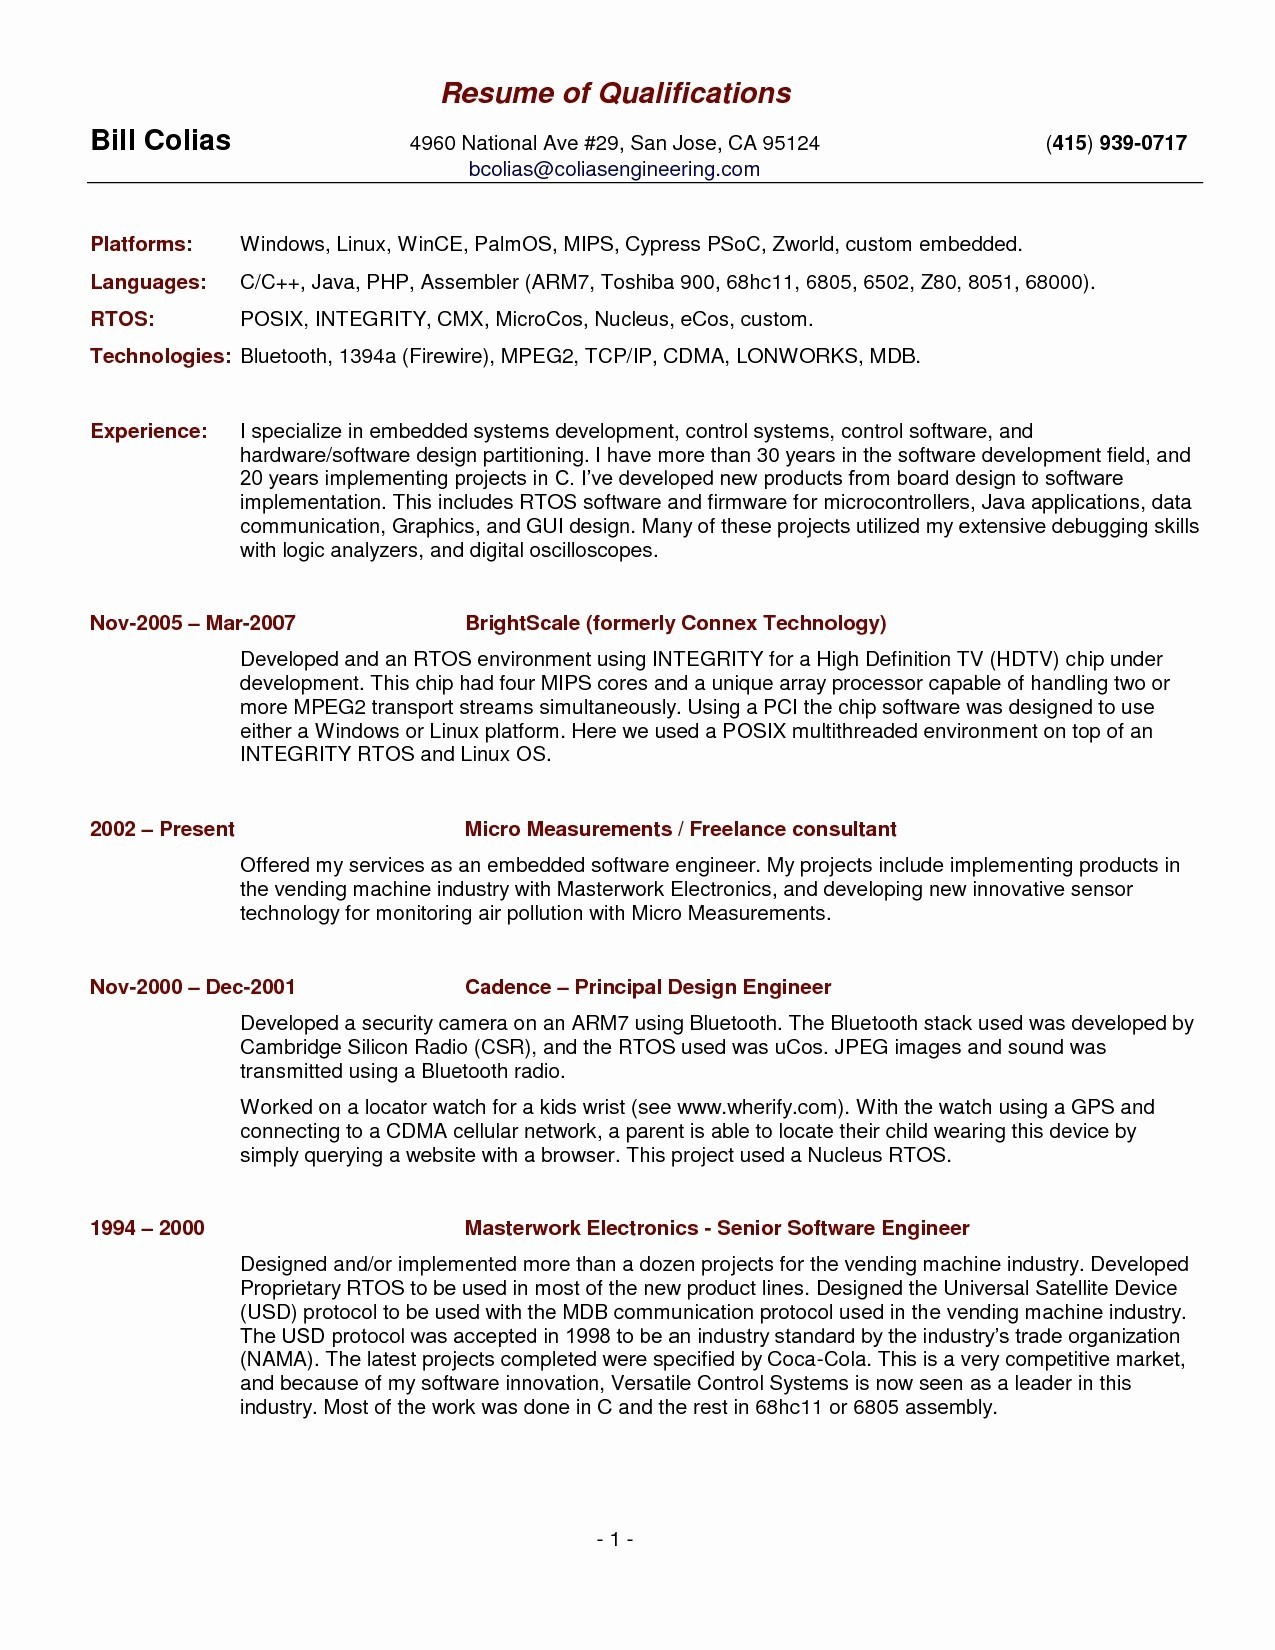 Coo Resume Template - Cool Resume Templates Awesome Skills Based Resume Template Awesome